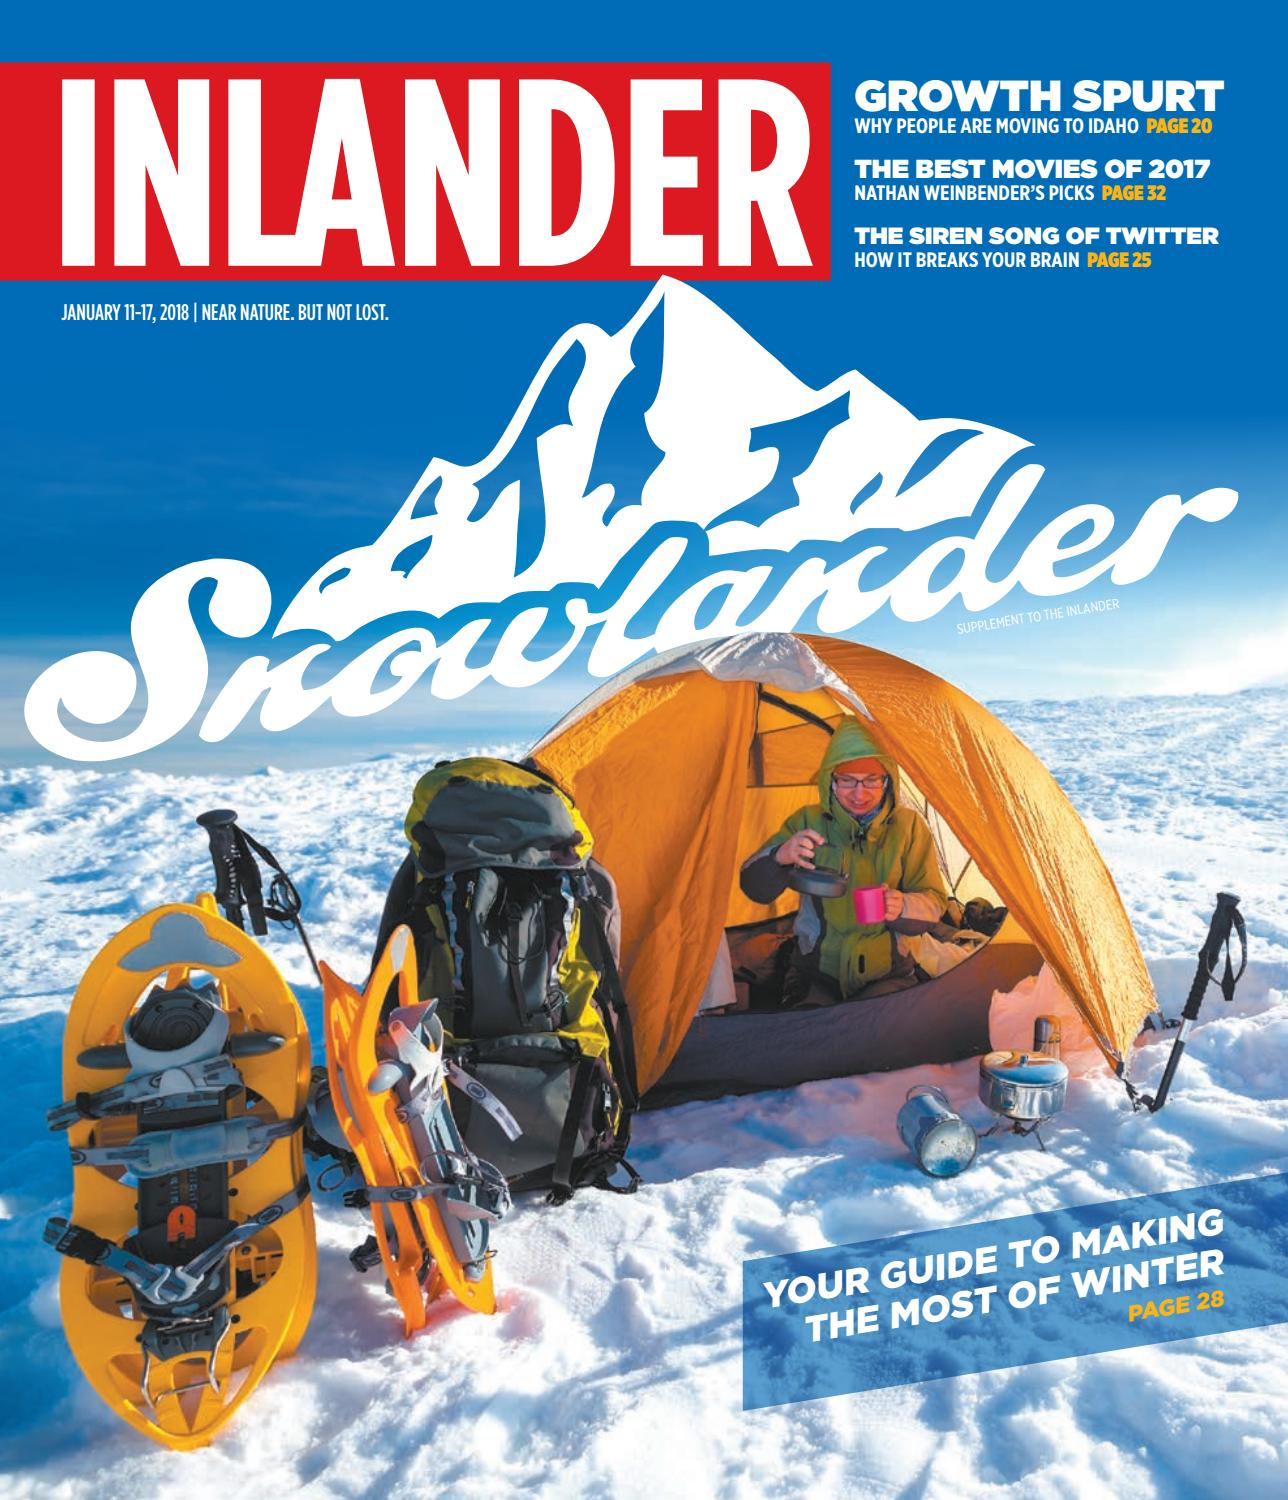 Inlander 01/11/2018 by The Inlander - issuu